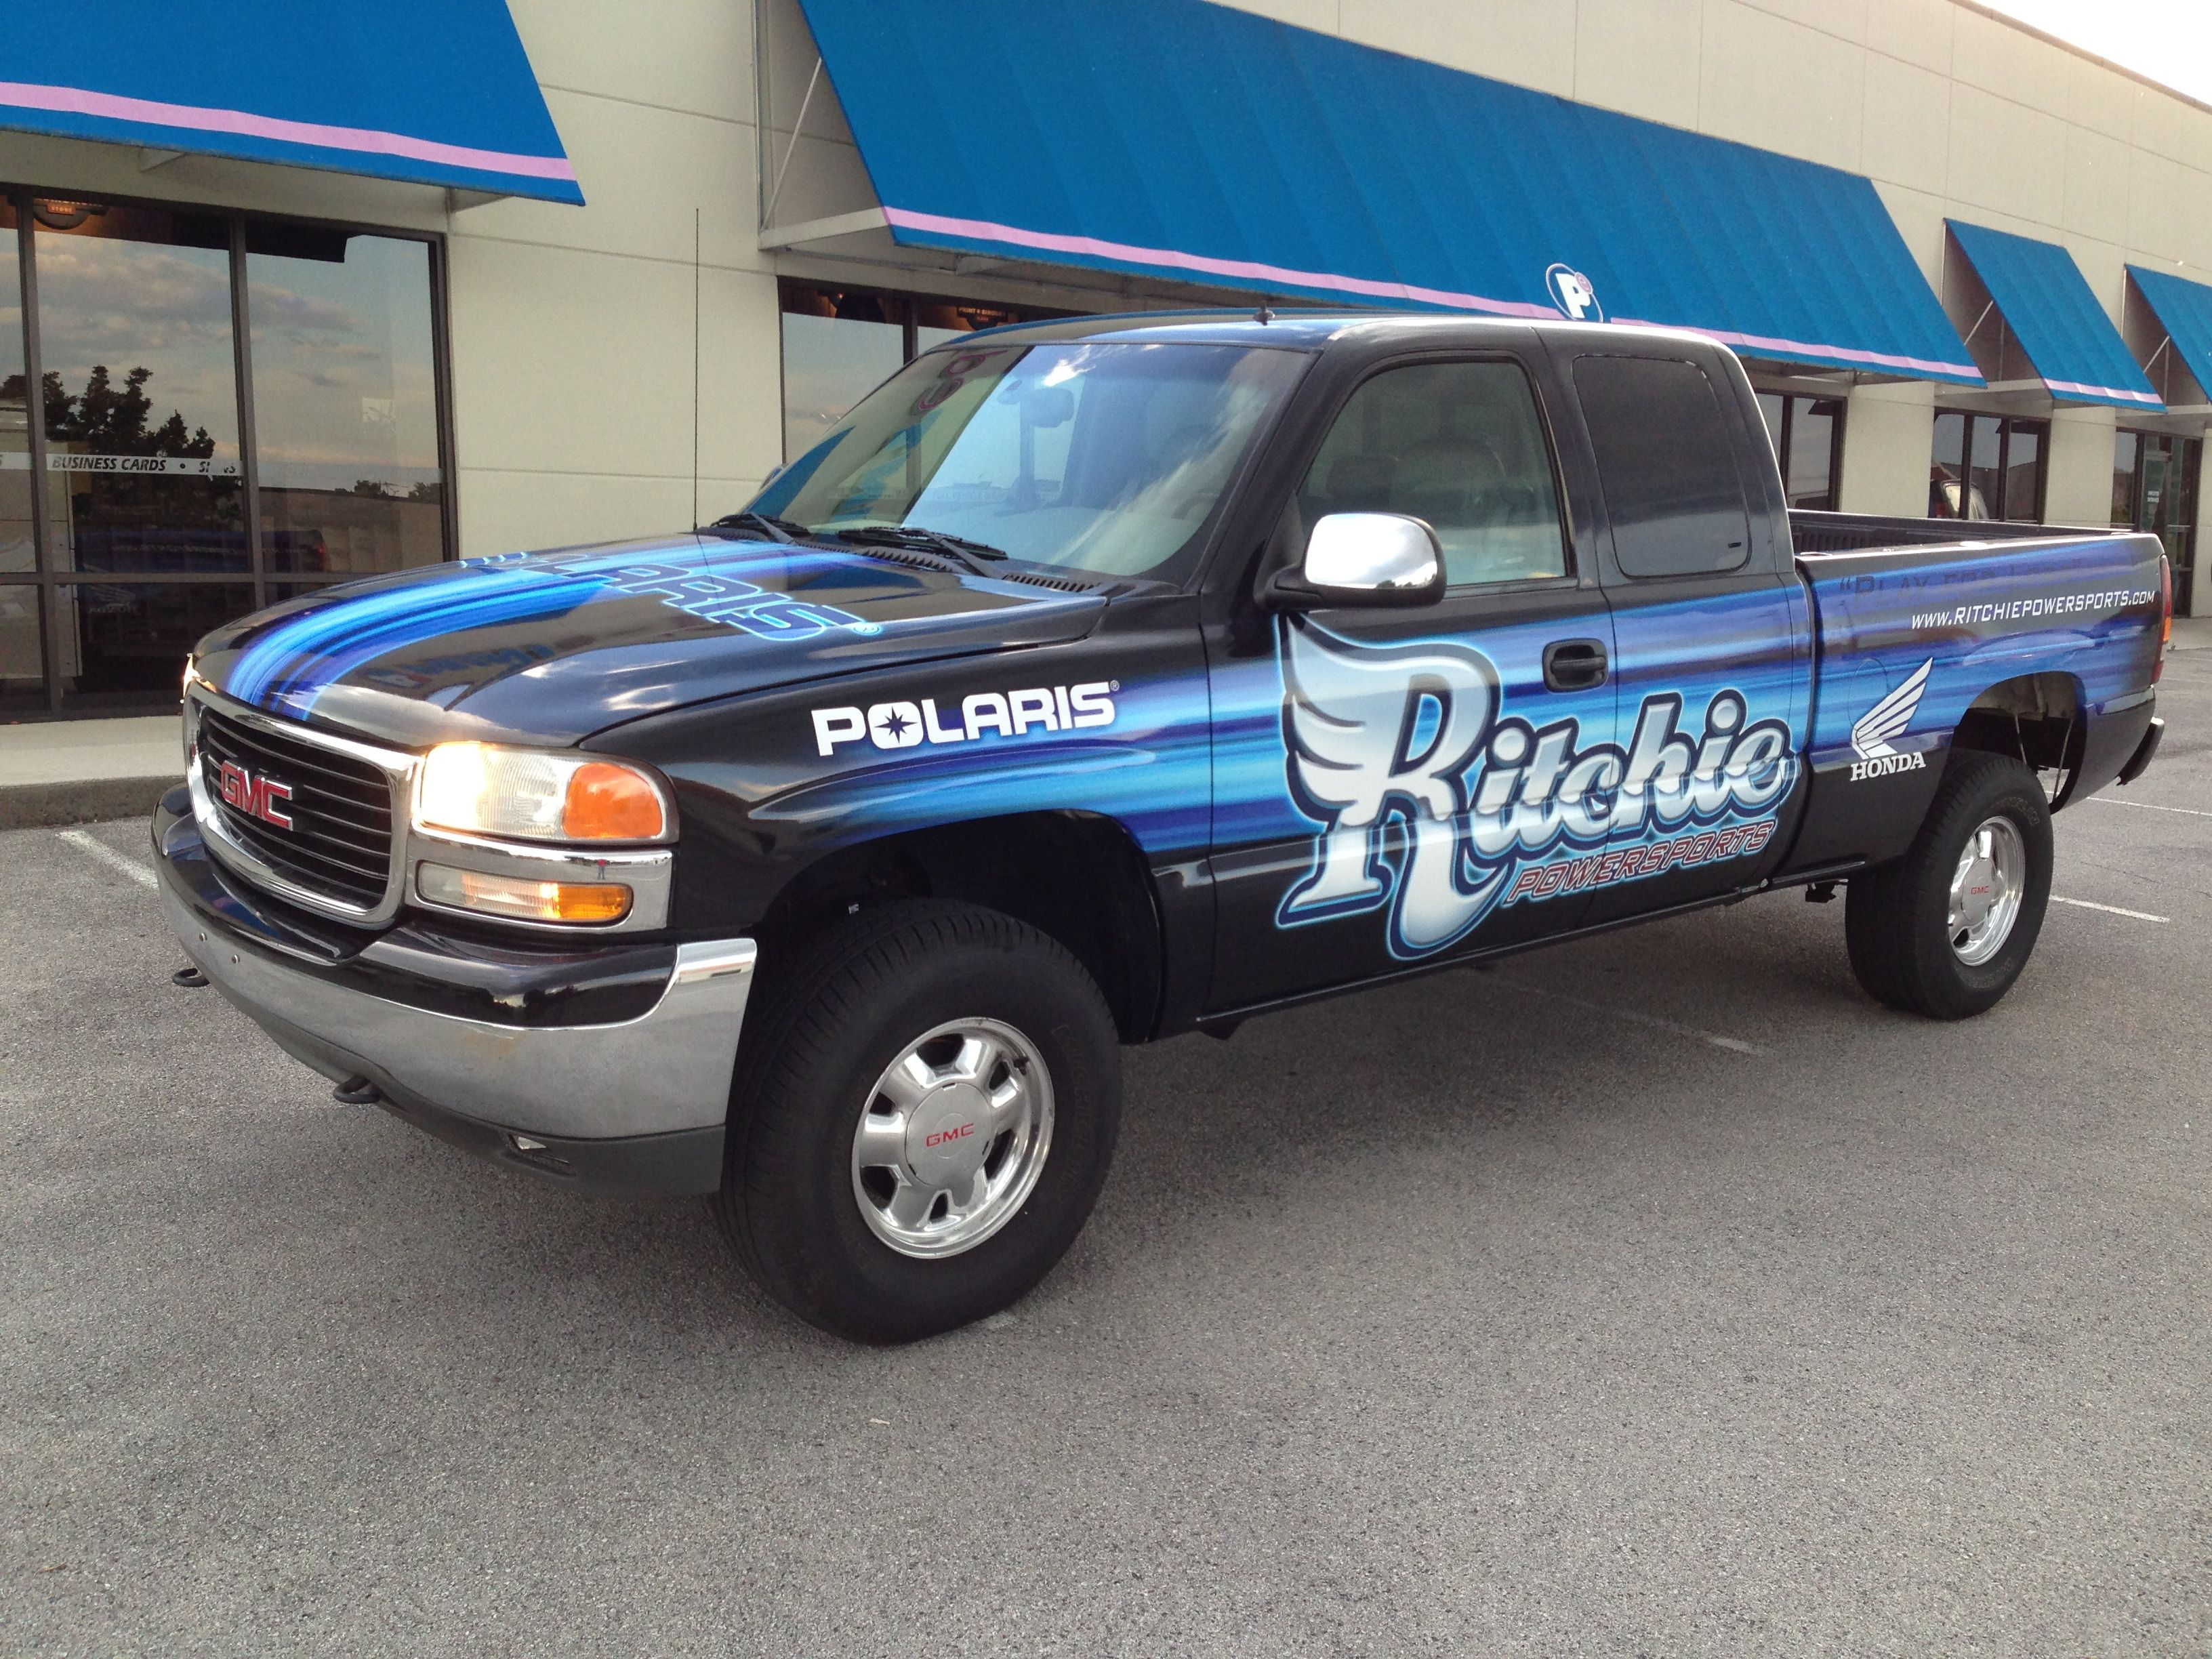 Ritchie Powersports Gmc Truck Wrap Knoxville Tn Vehiclegraphics Vehiclewraps Car Graphics Gmc Truck Car Wrap